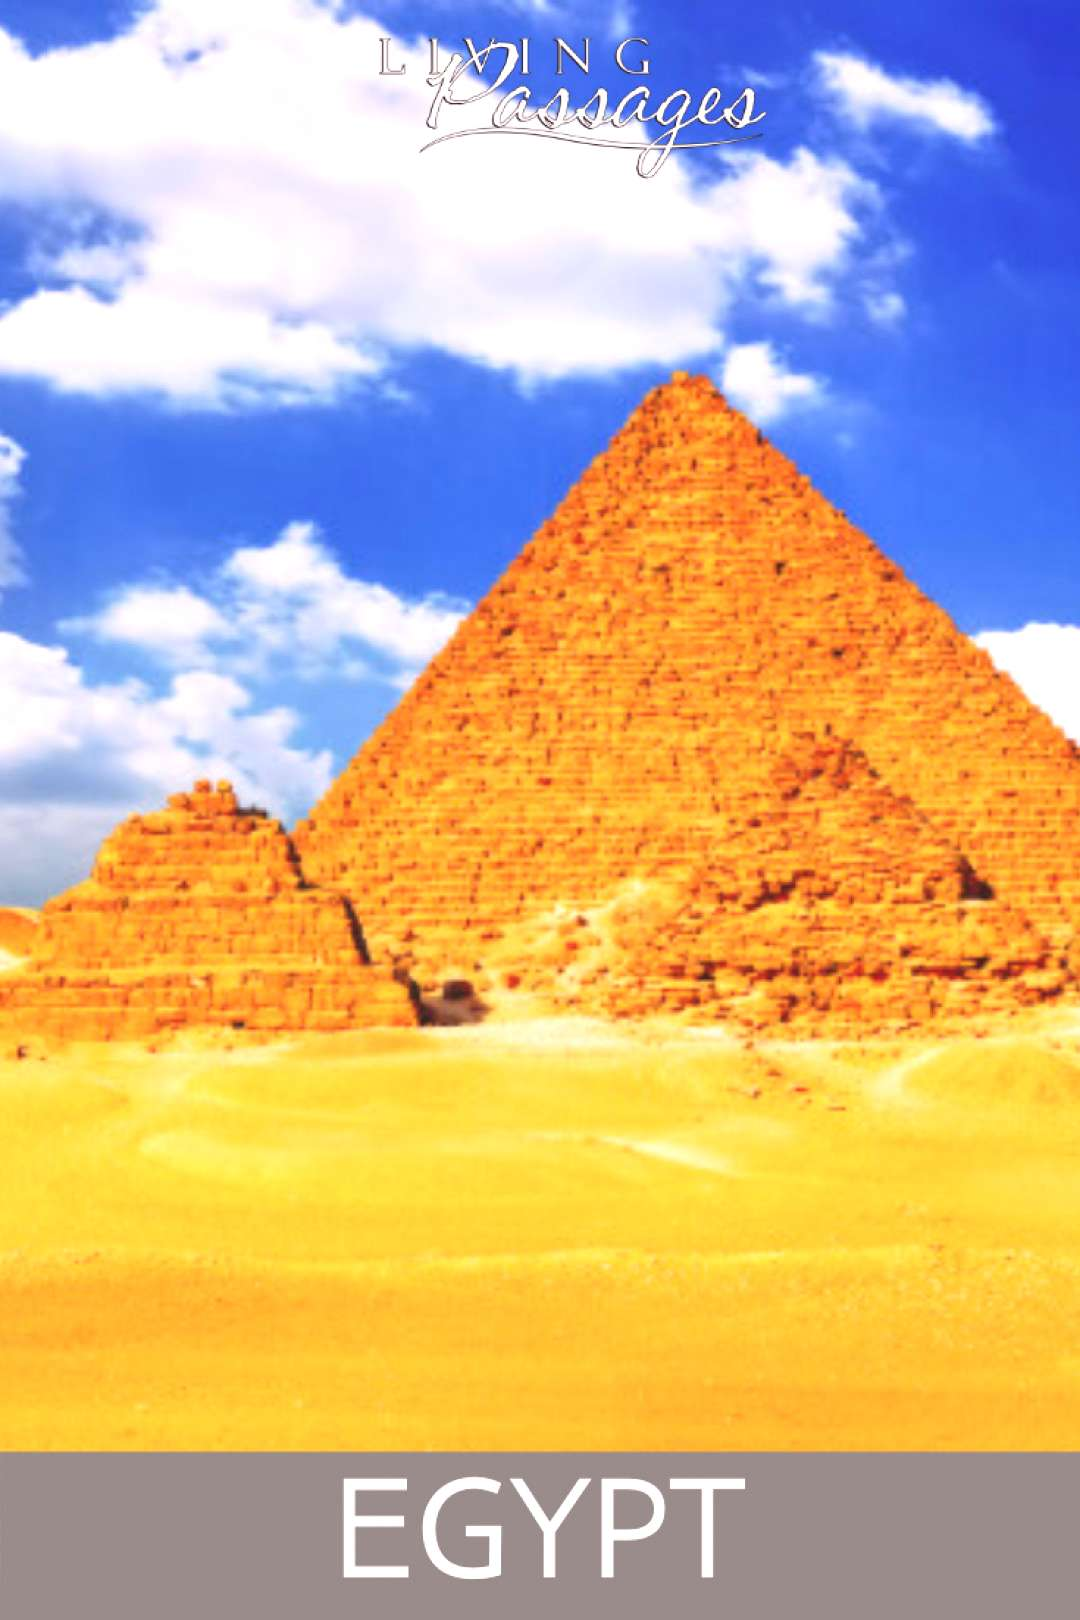 Egypt | Living Passages Let us help you check off places on your bucket list! For over 20 years we